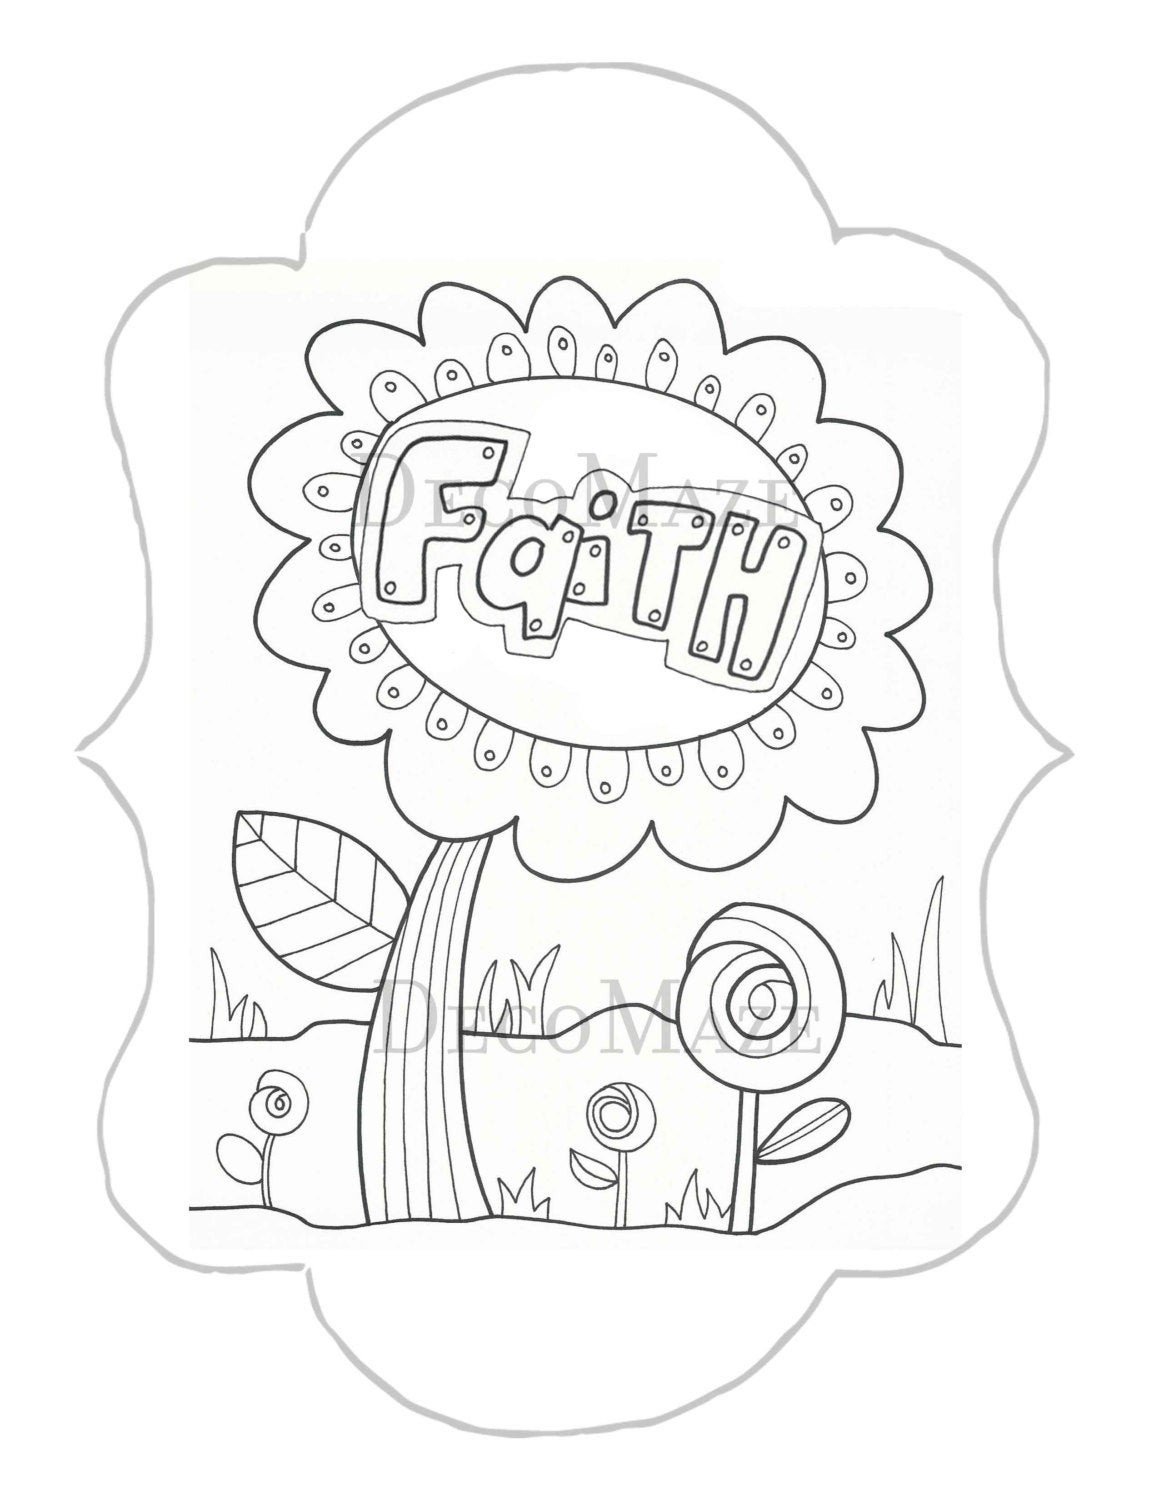 Best ideas about Faith Coloring Pages For Kids . Save or Pin Faith coloring page flower coloring page adult kids by Now.